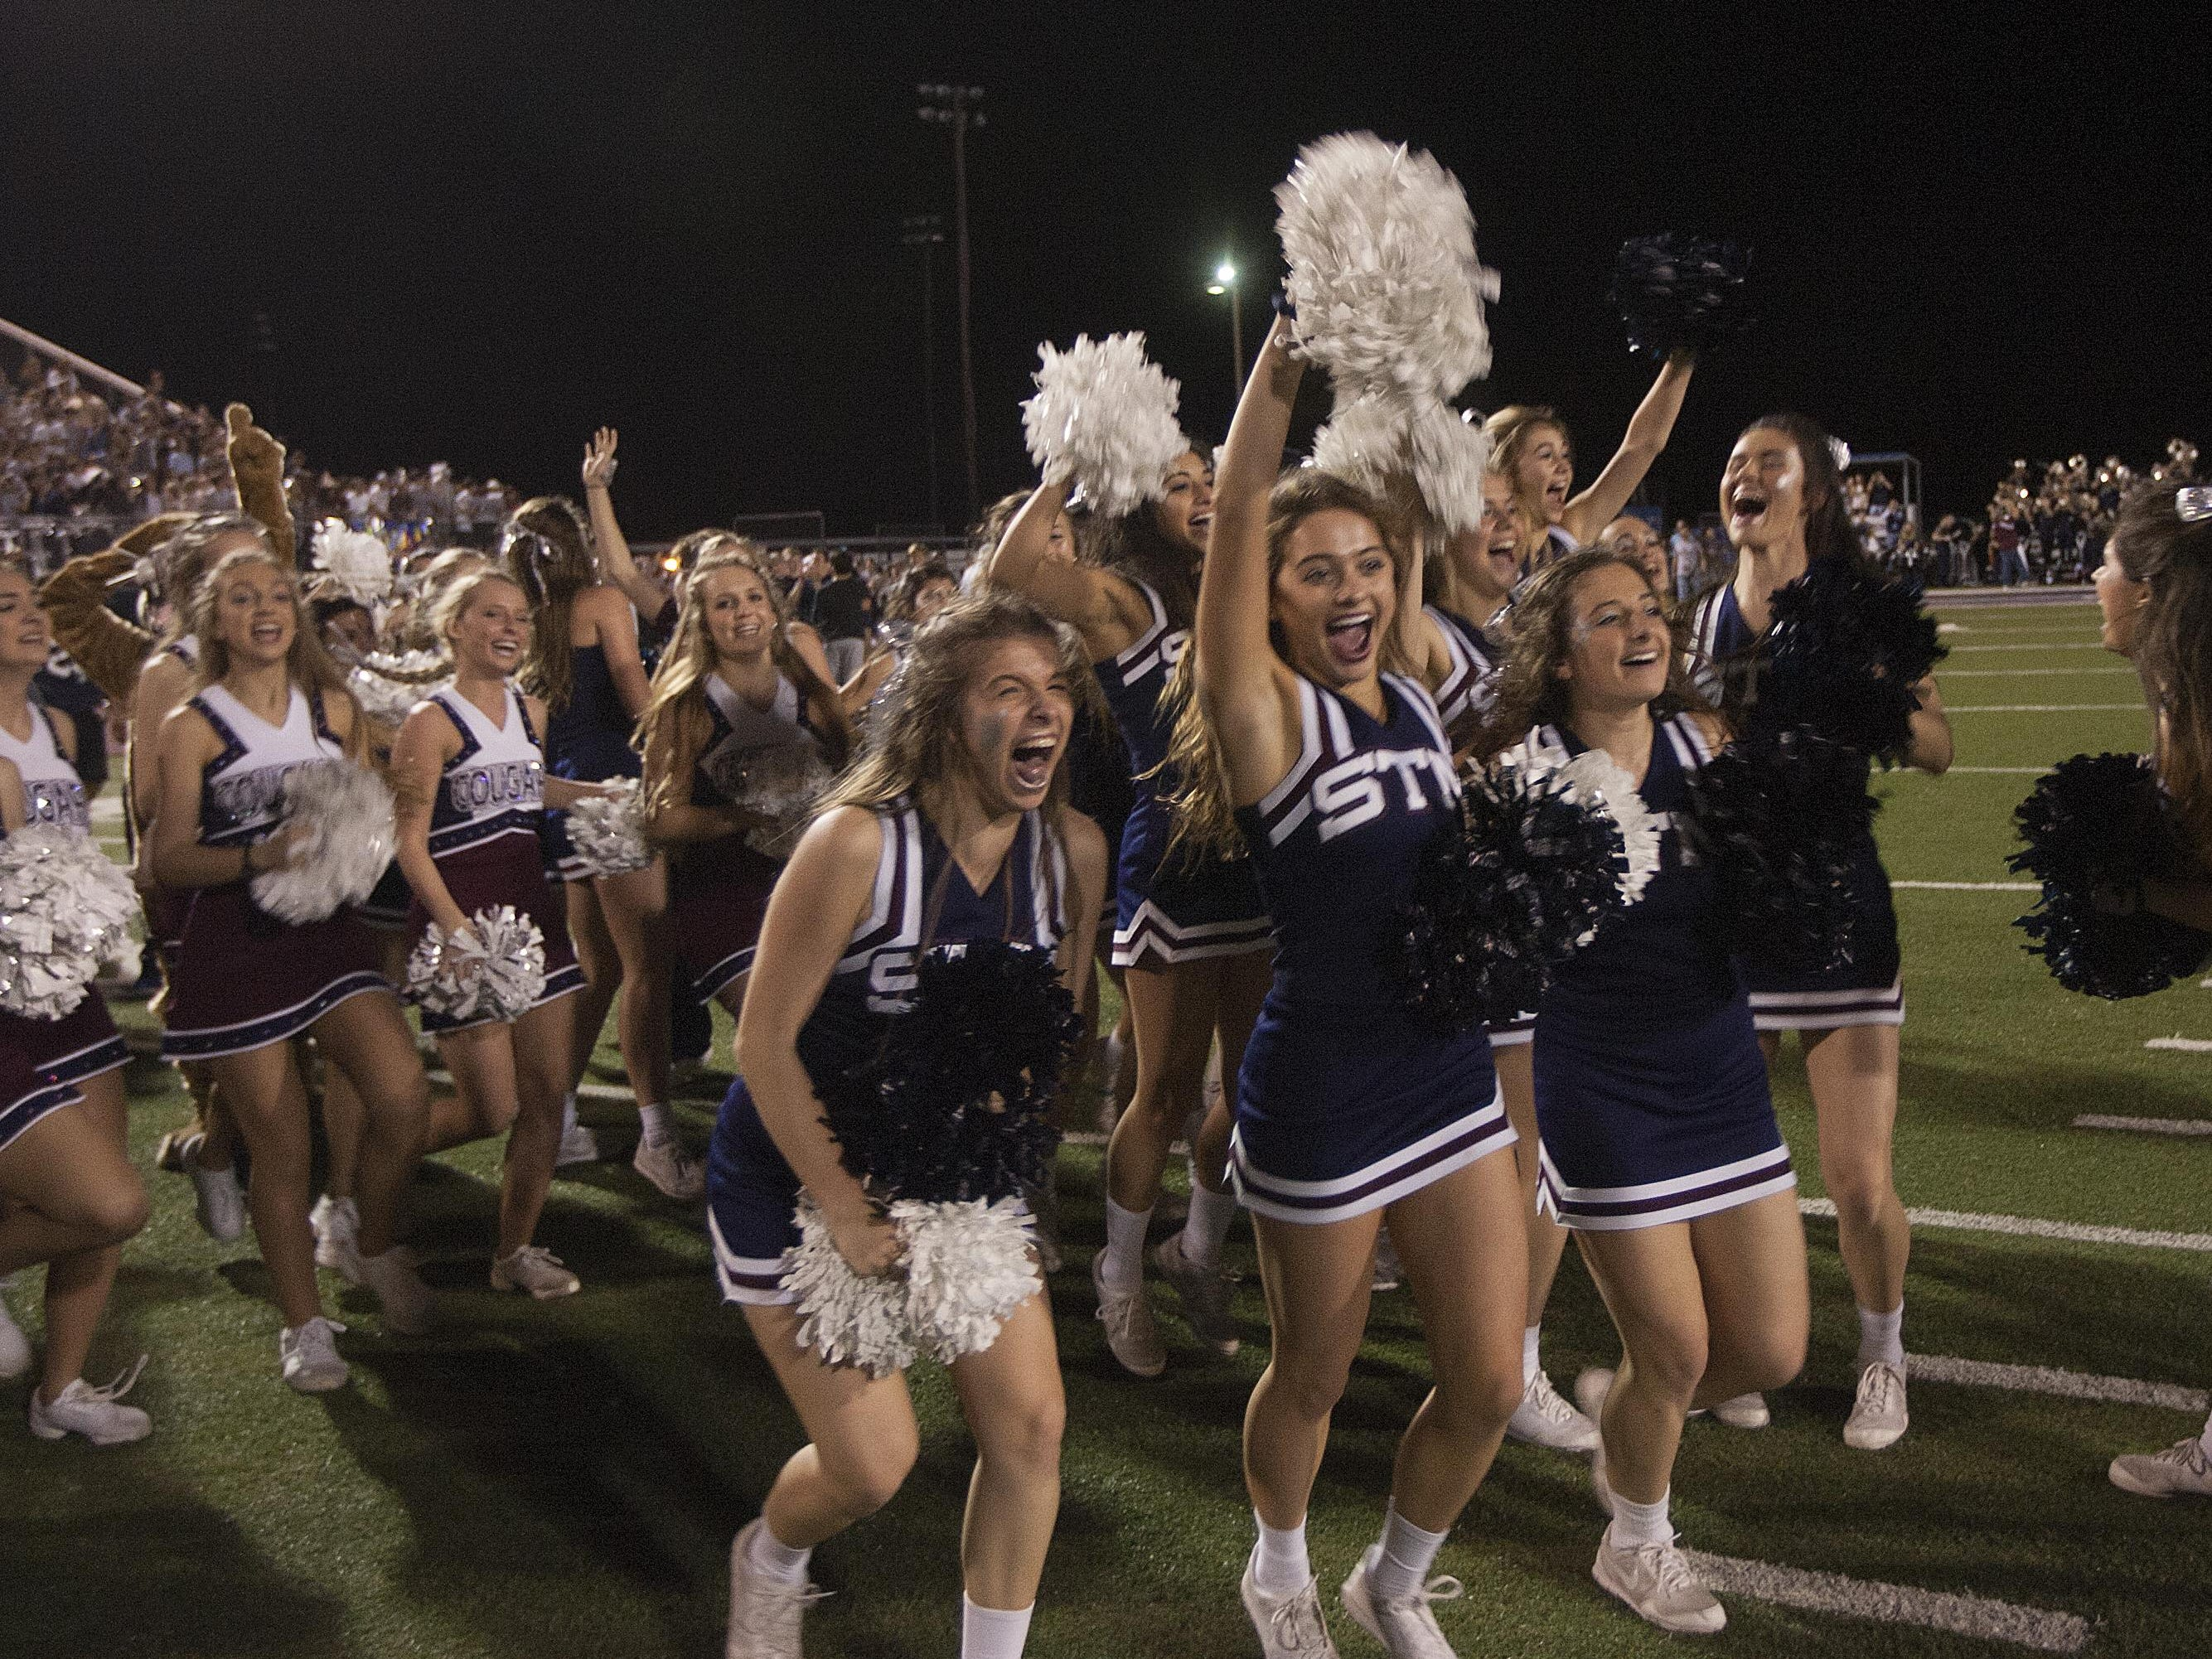 St. Thomas More cheerleaders celebrate the final moments of the Cougars' state semifinal victory over Teurlings Catholic to advance to the Division II state championship game at 5 p.m. Friday in the Mercedes-Benz Superdome.